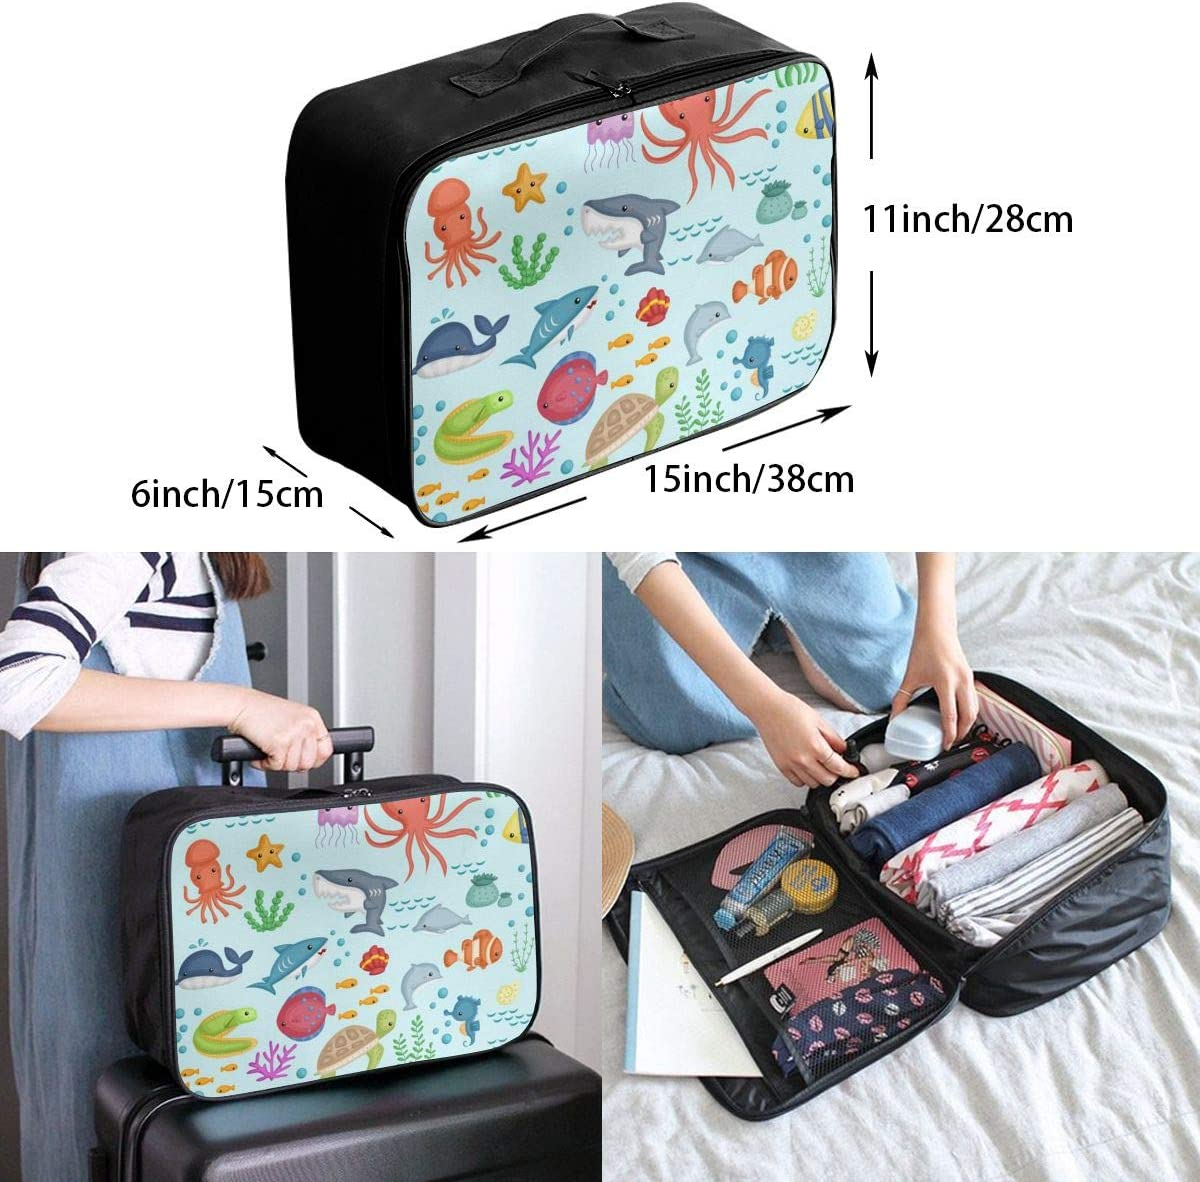 Underwater Life Lightweight LargeTravel Storage Luggage Trolley Bag Travel Duffel Bags Carry-On Tote